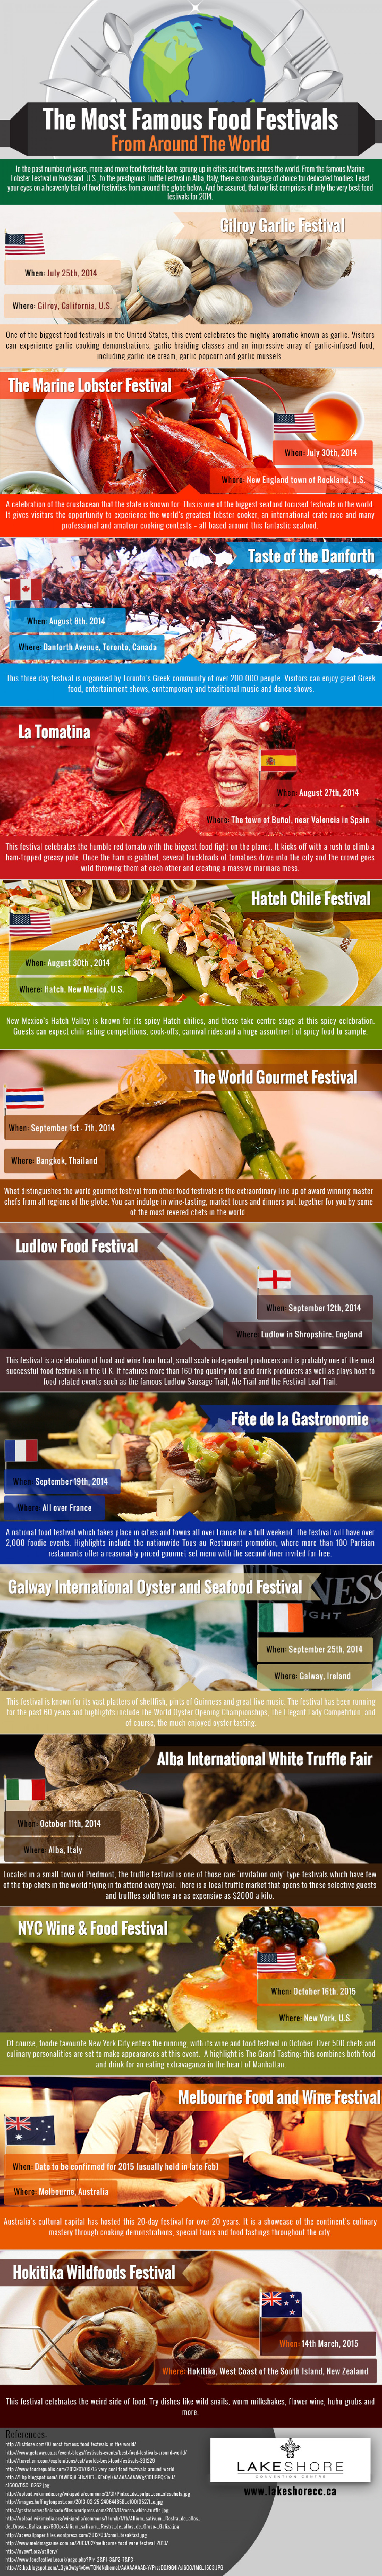 The Most Famous Food Festivals from Around the World Infographic